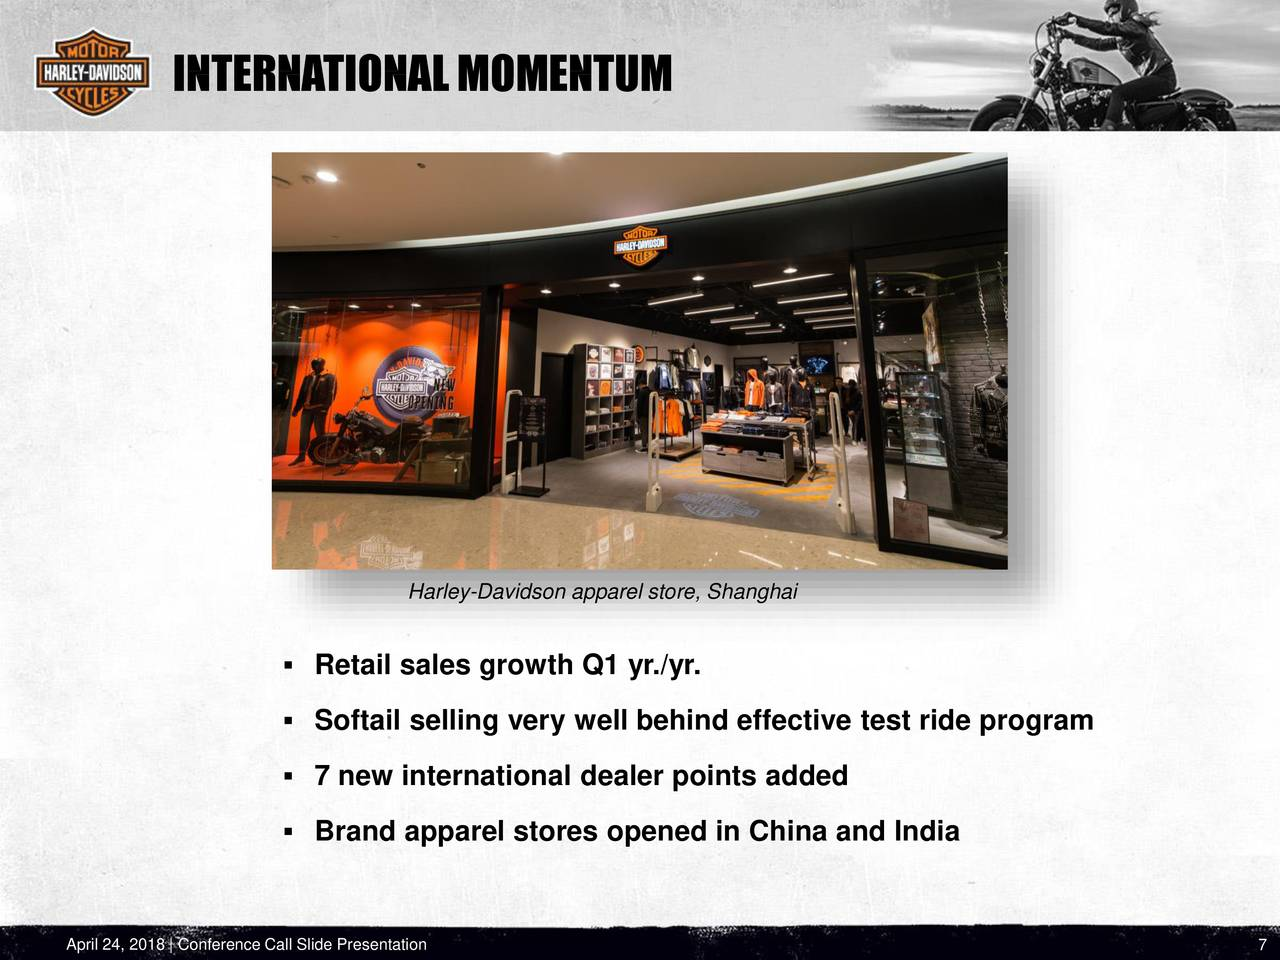 global economy and strategic plan of harley davidson inc Strategic business plan for harley davidson firm name institution business plan for harley davidson firm part 1: global economies and the factors affecting harley davidson the global economy in the firm has not just superior harley's ranking from the remarkably reasonably competitive and rewarding industry intended for large cycles, where it was pummeled for a long time simply by ocean.